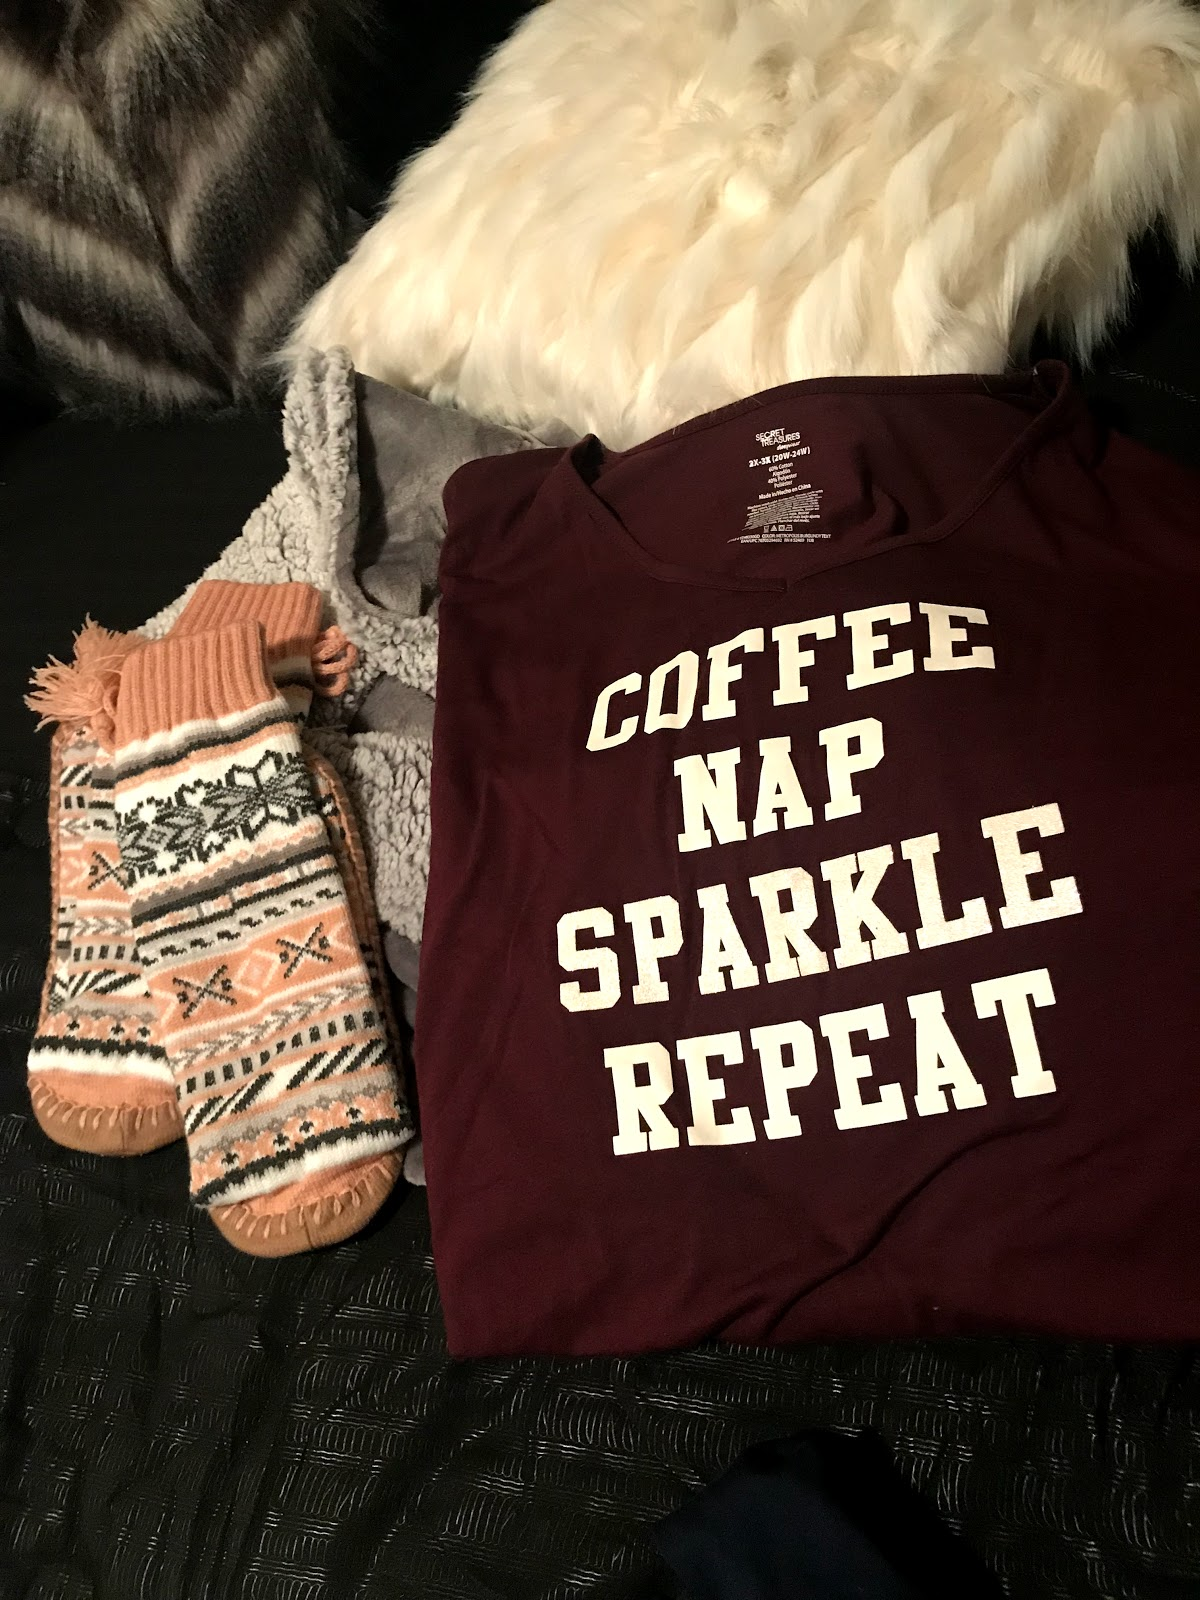 Image: Items being packed for a road trip. Night shirt that reads coffee, nap, sparkle repeat. socks and robe.